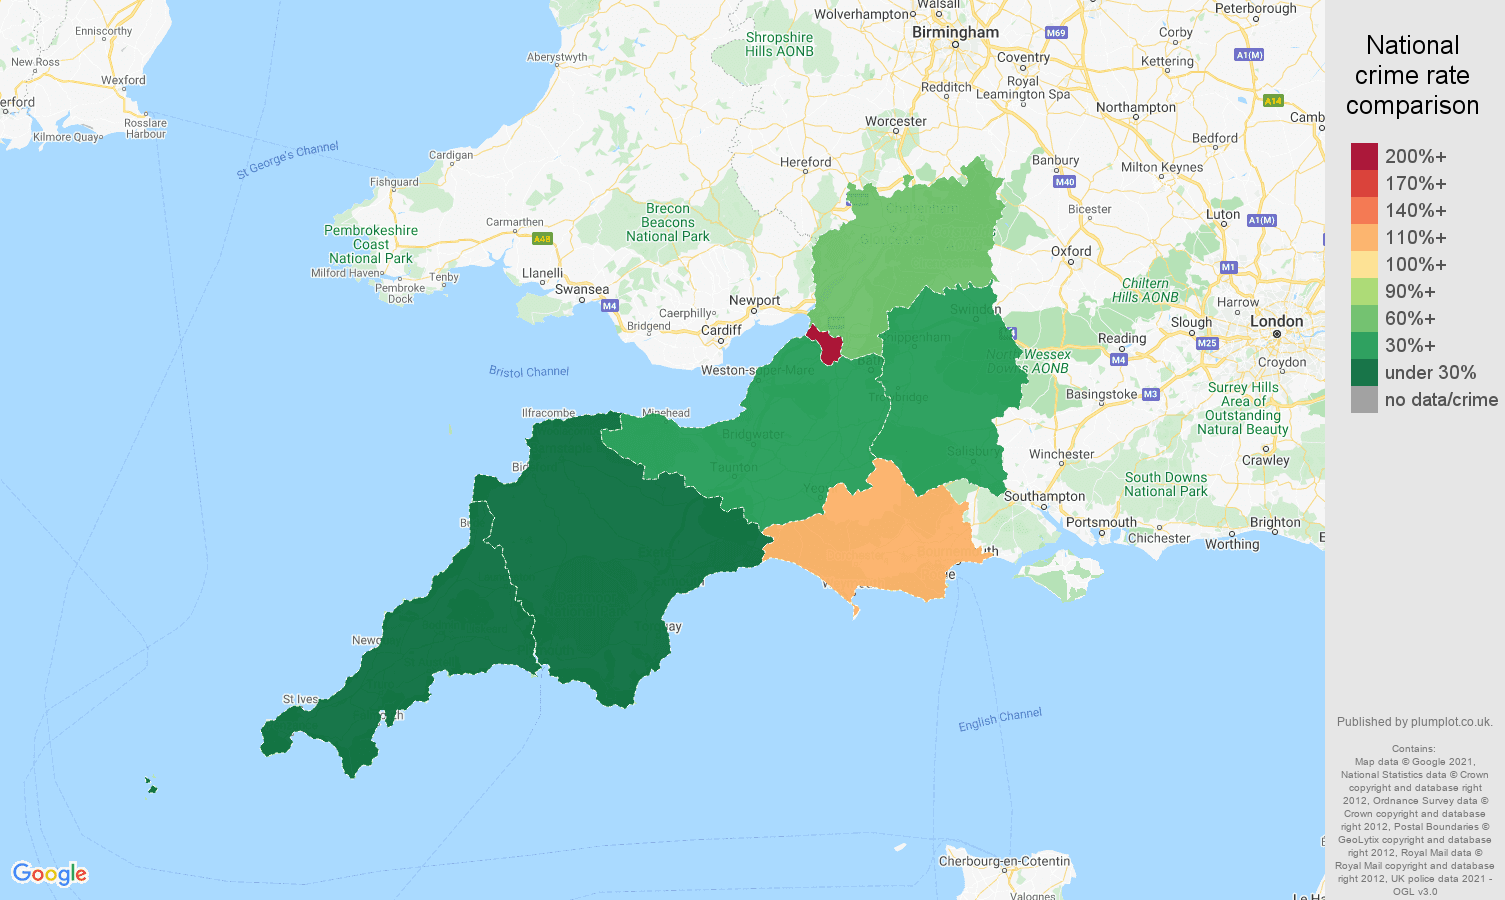 South West bicycle theft crime rate comparison map